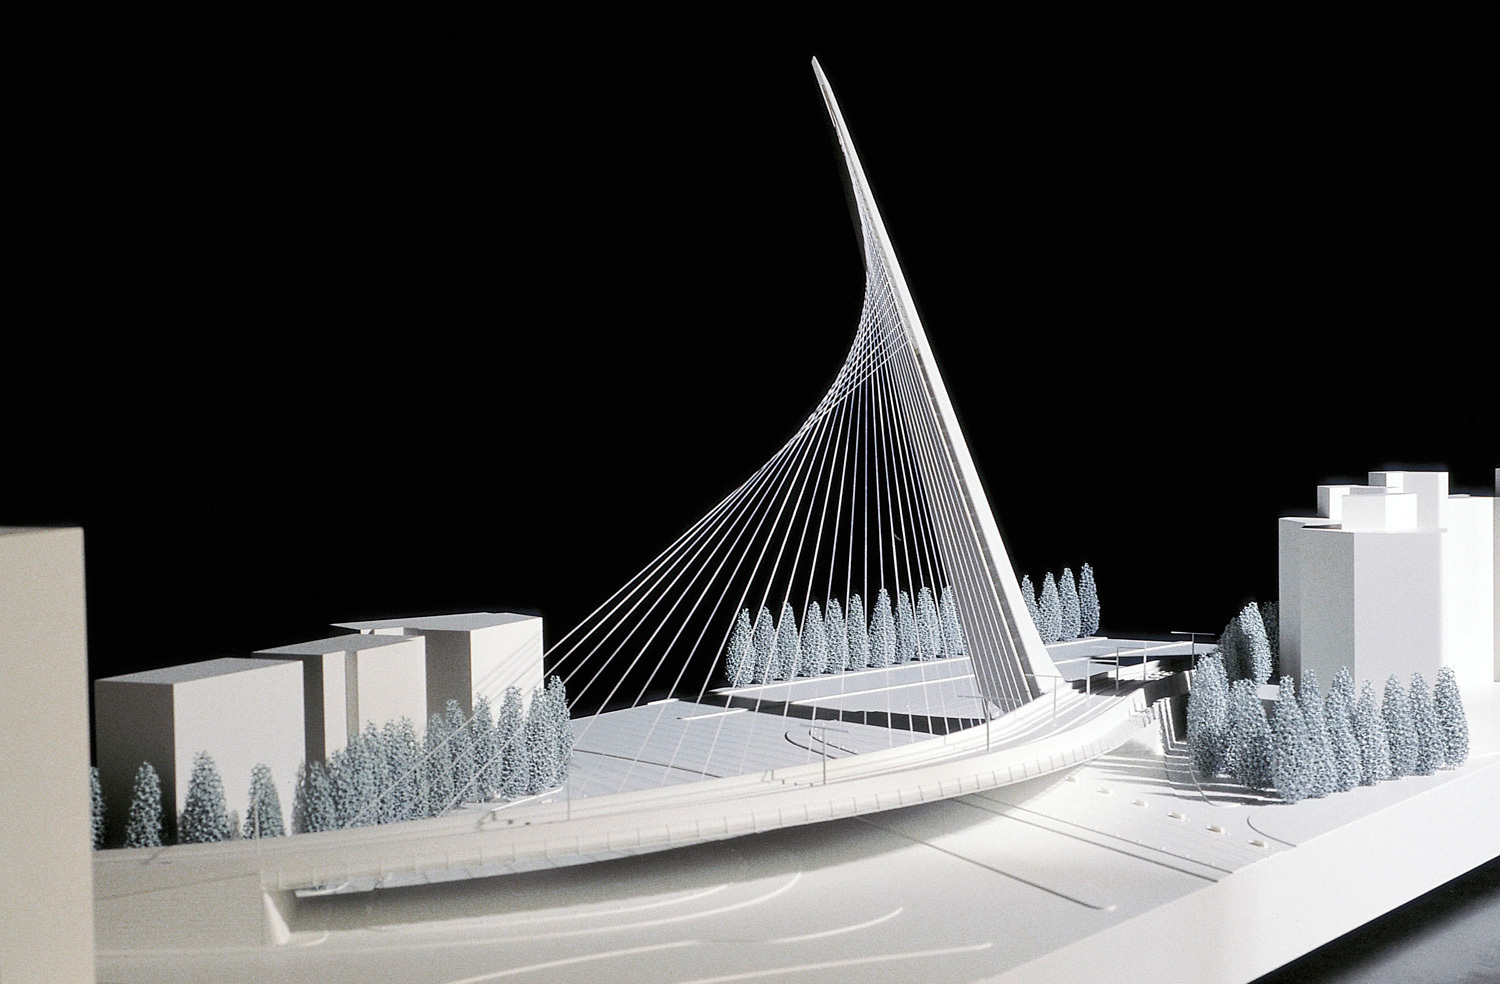 Cascade Floor Plan Santiago Calatrava Exhibition Now Open In Vatican City